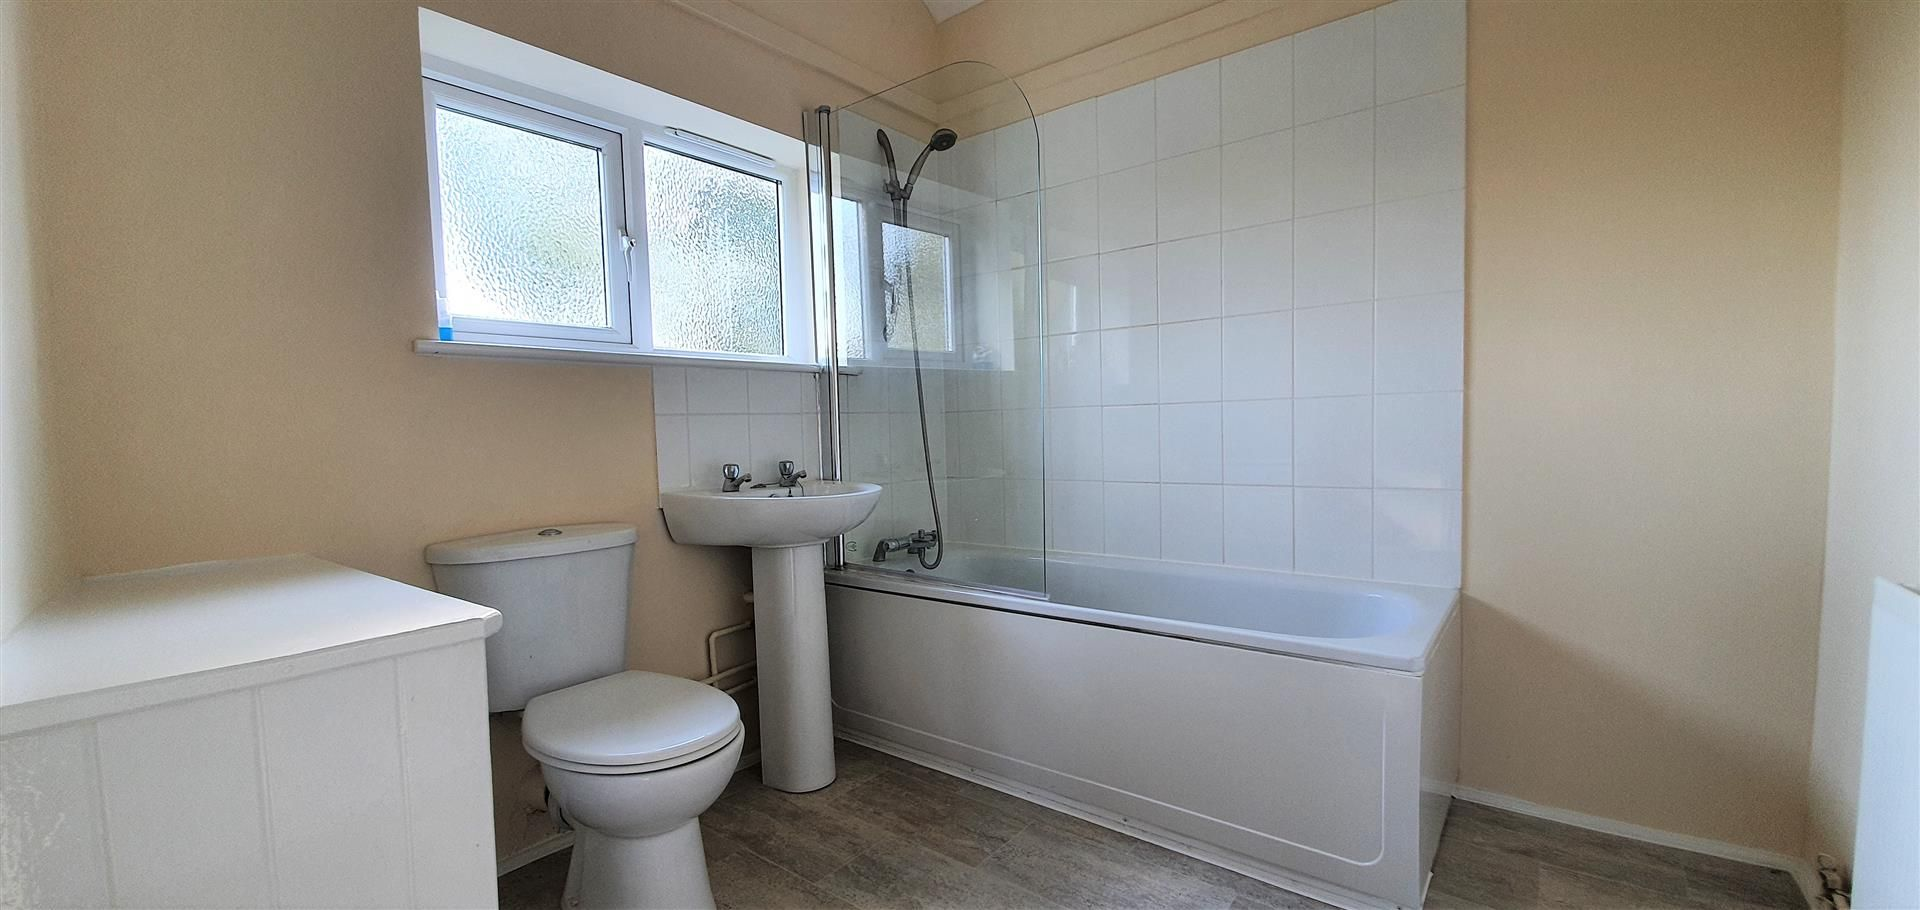 4 bed house to rent in Breinton 11